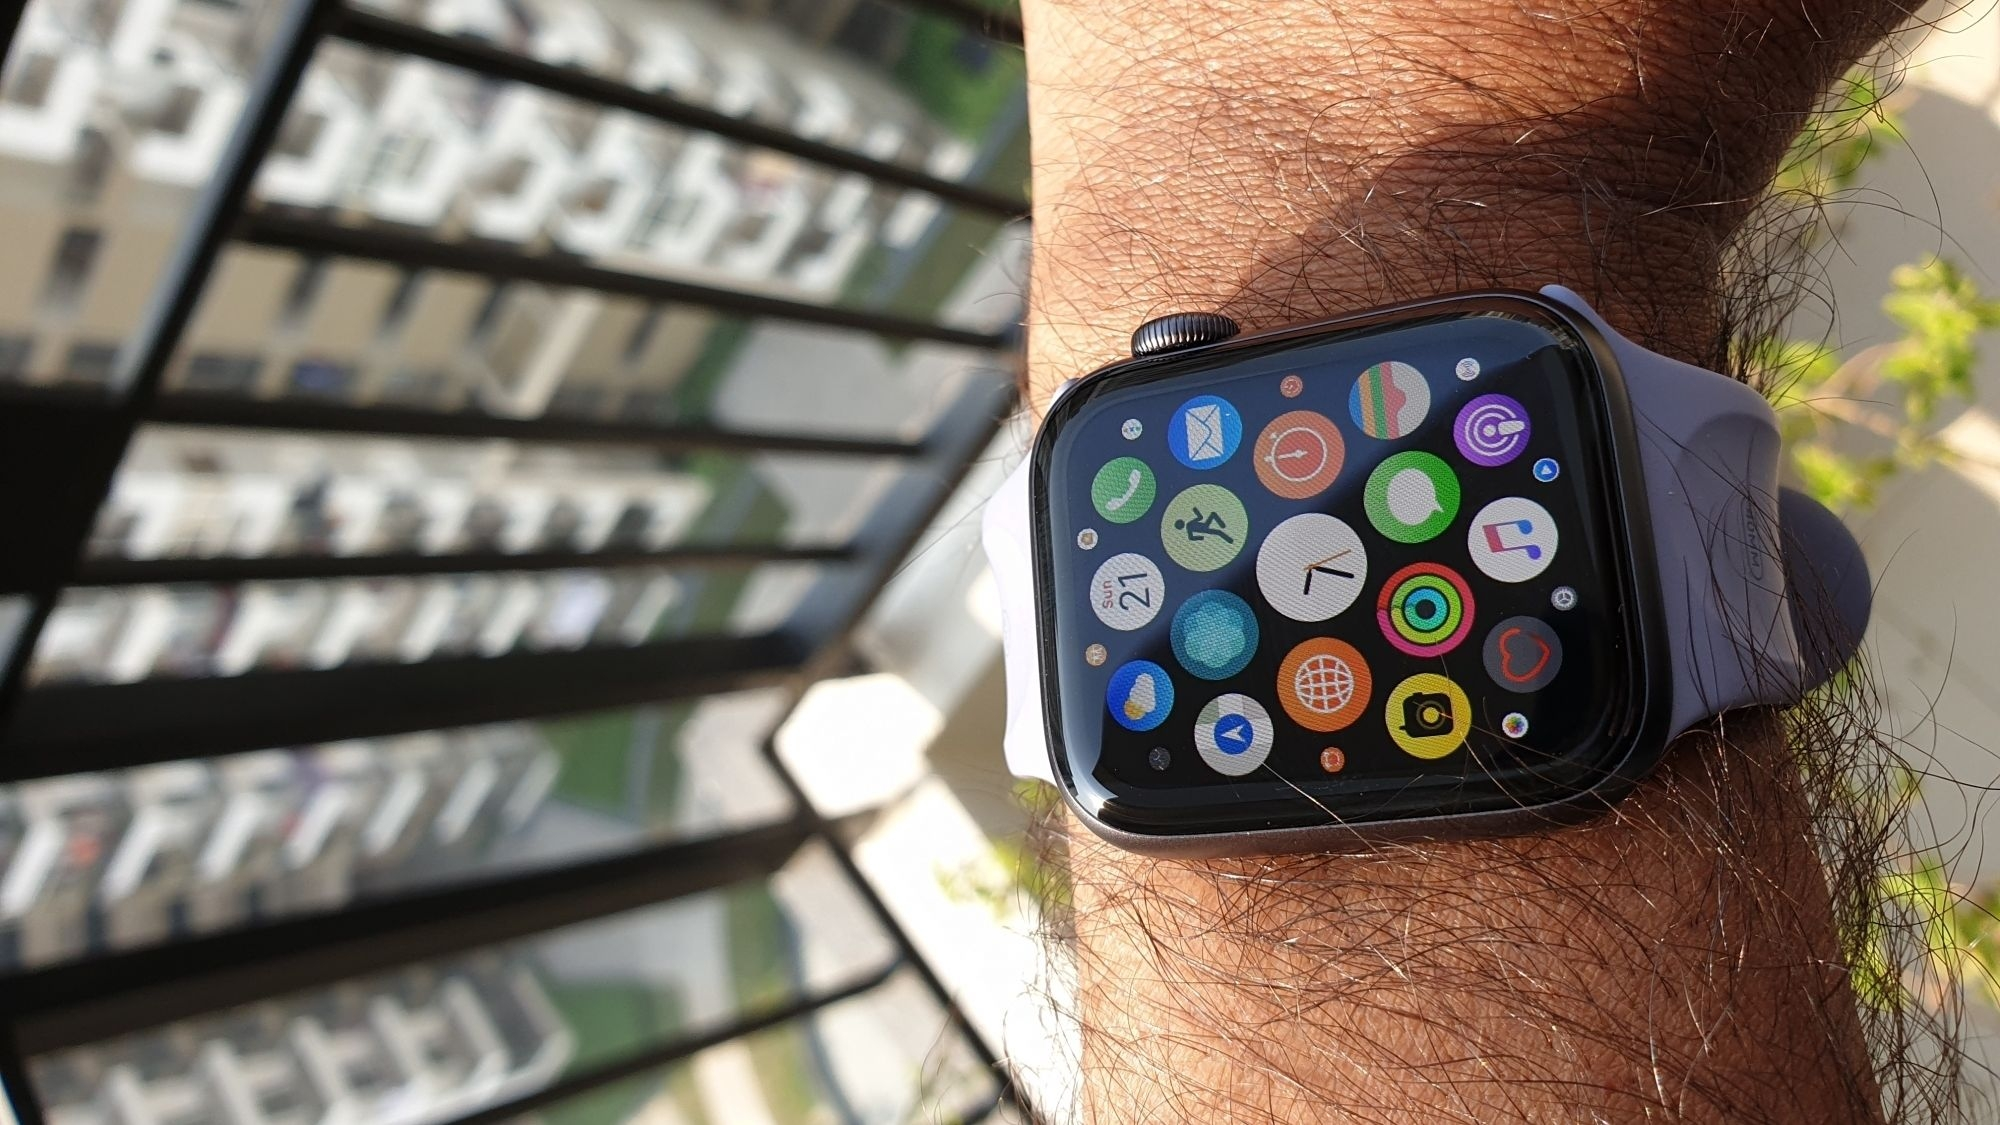 Smartwatch Can Sense If You Are Chopping Veggies, Say Researchers